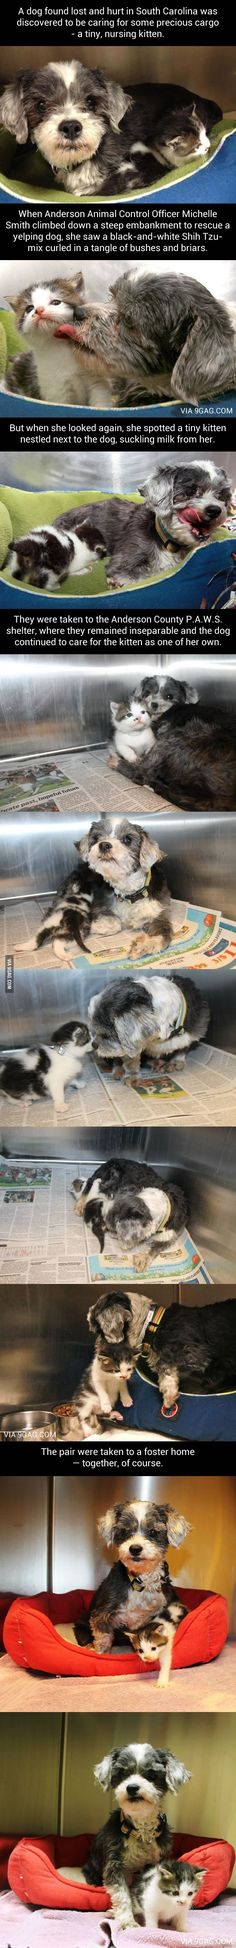 What a beautiful story!!  maternal love is wonderful!!